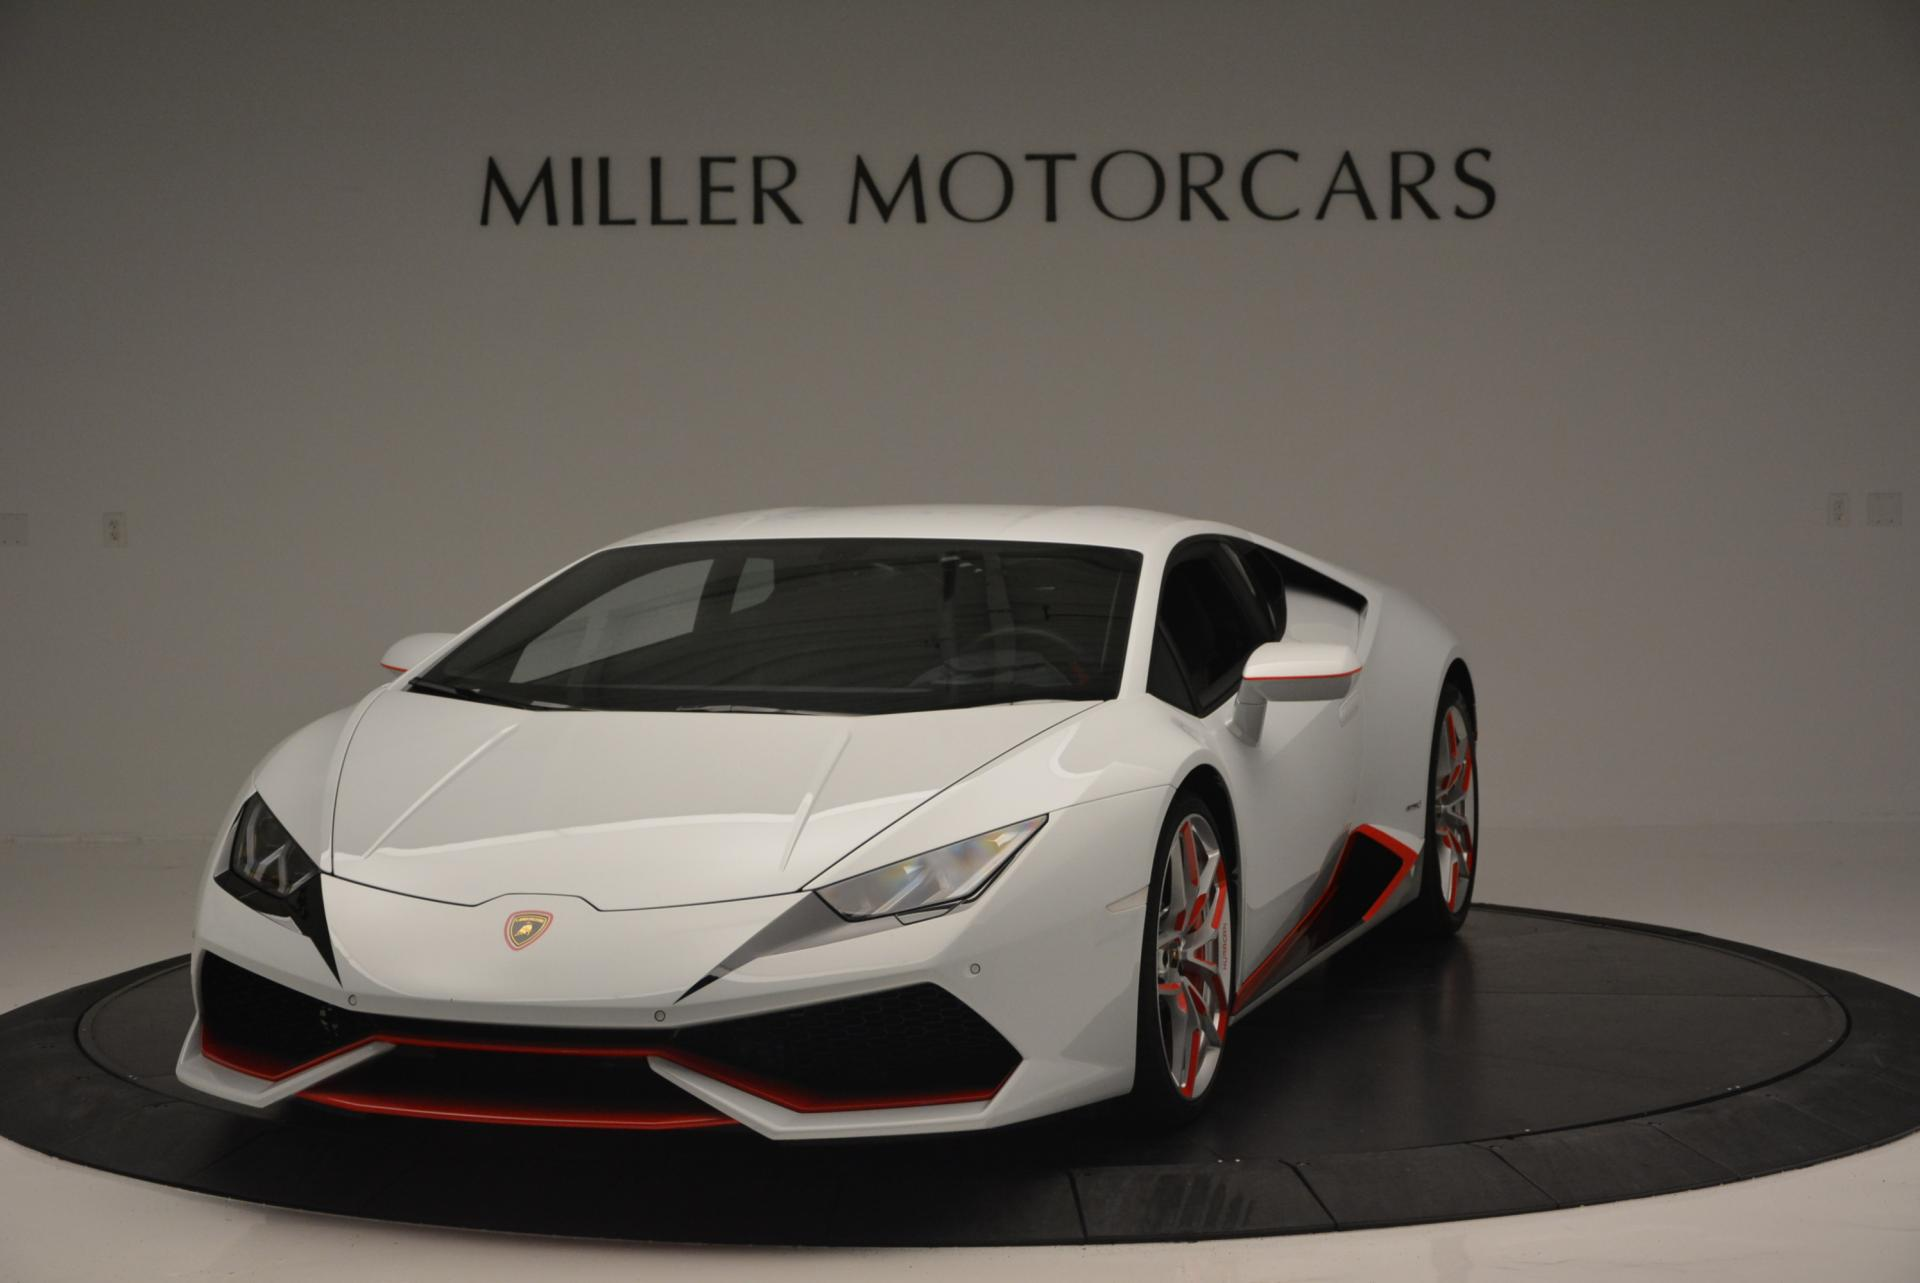 Used 2015 Lamborghini Huracan LP610-4 for sale Sold at Rolls-Royce Motor Cars Greenwich in Greenwich CT 06830 1